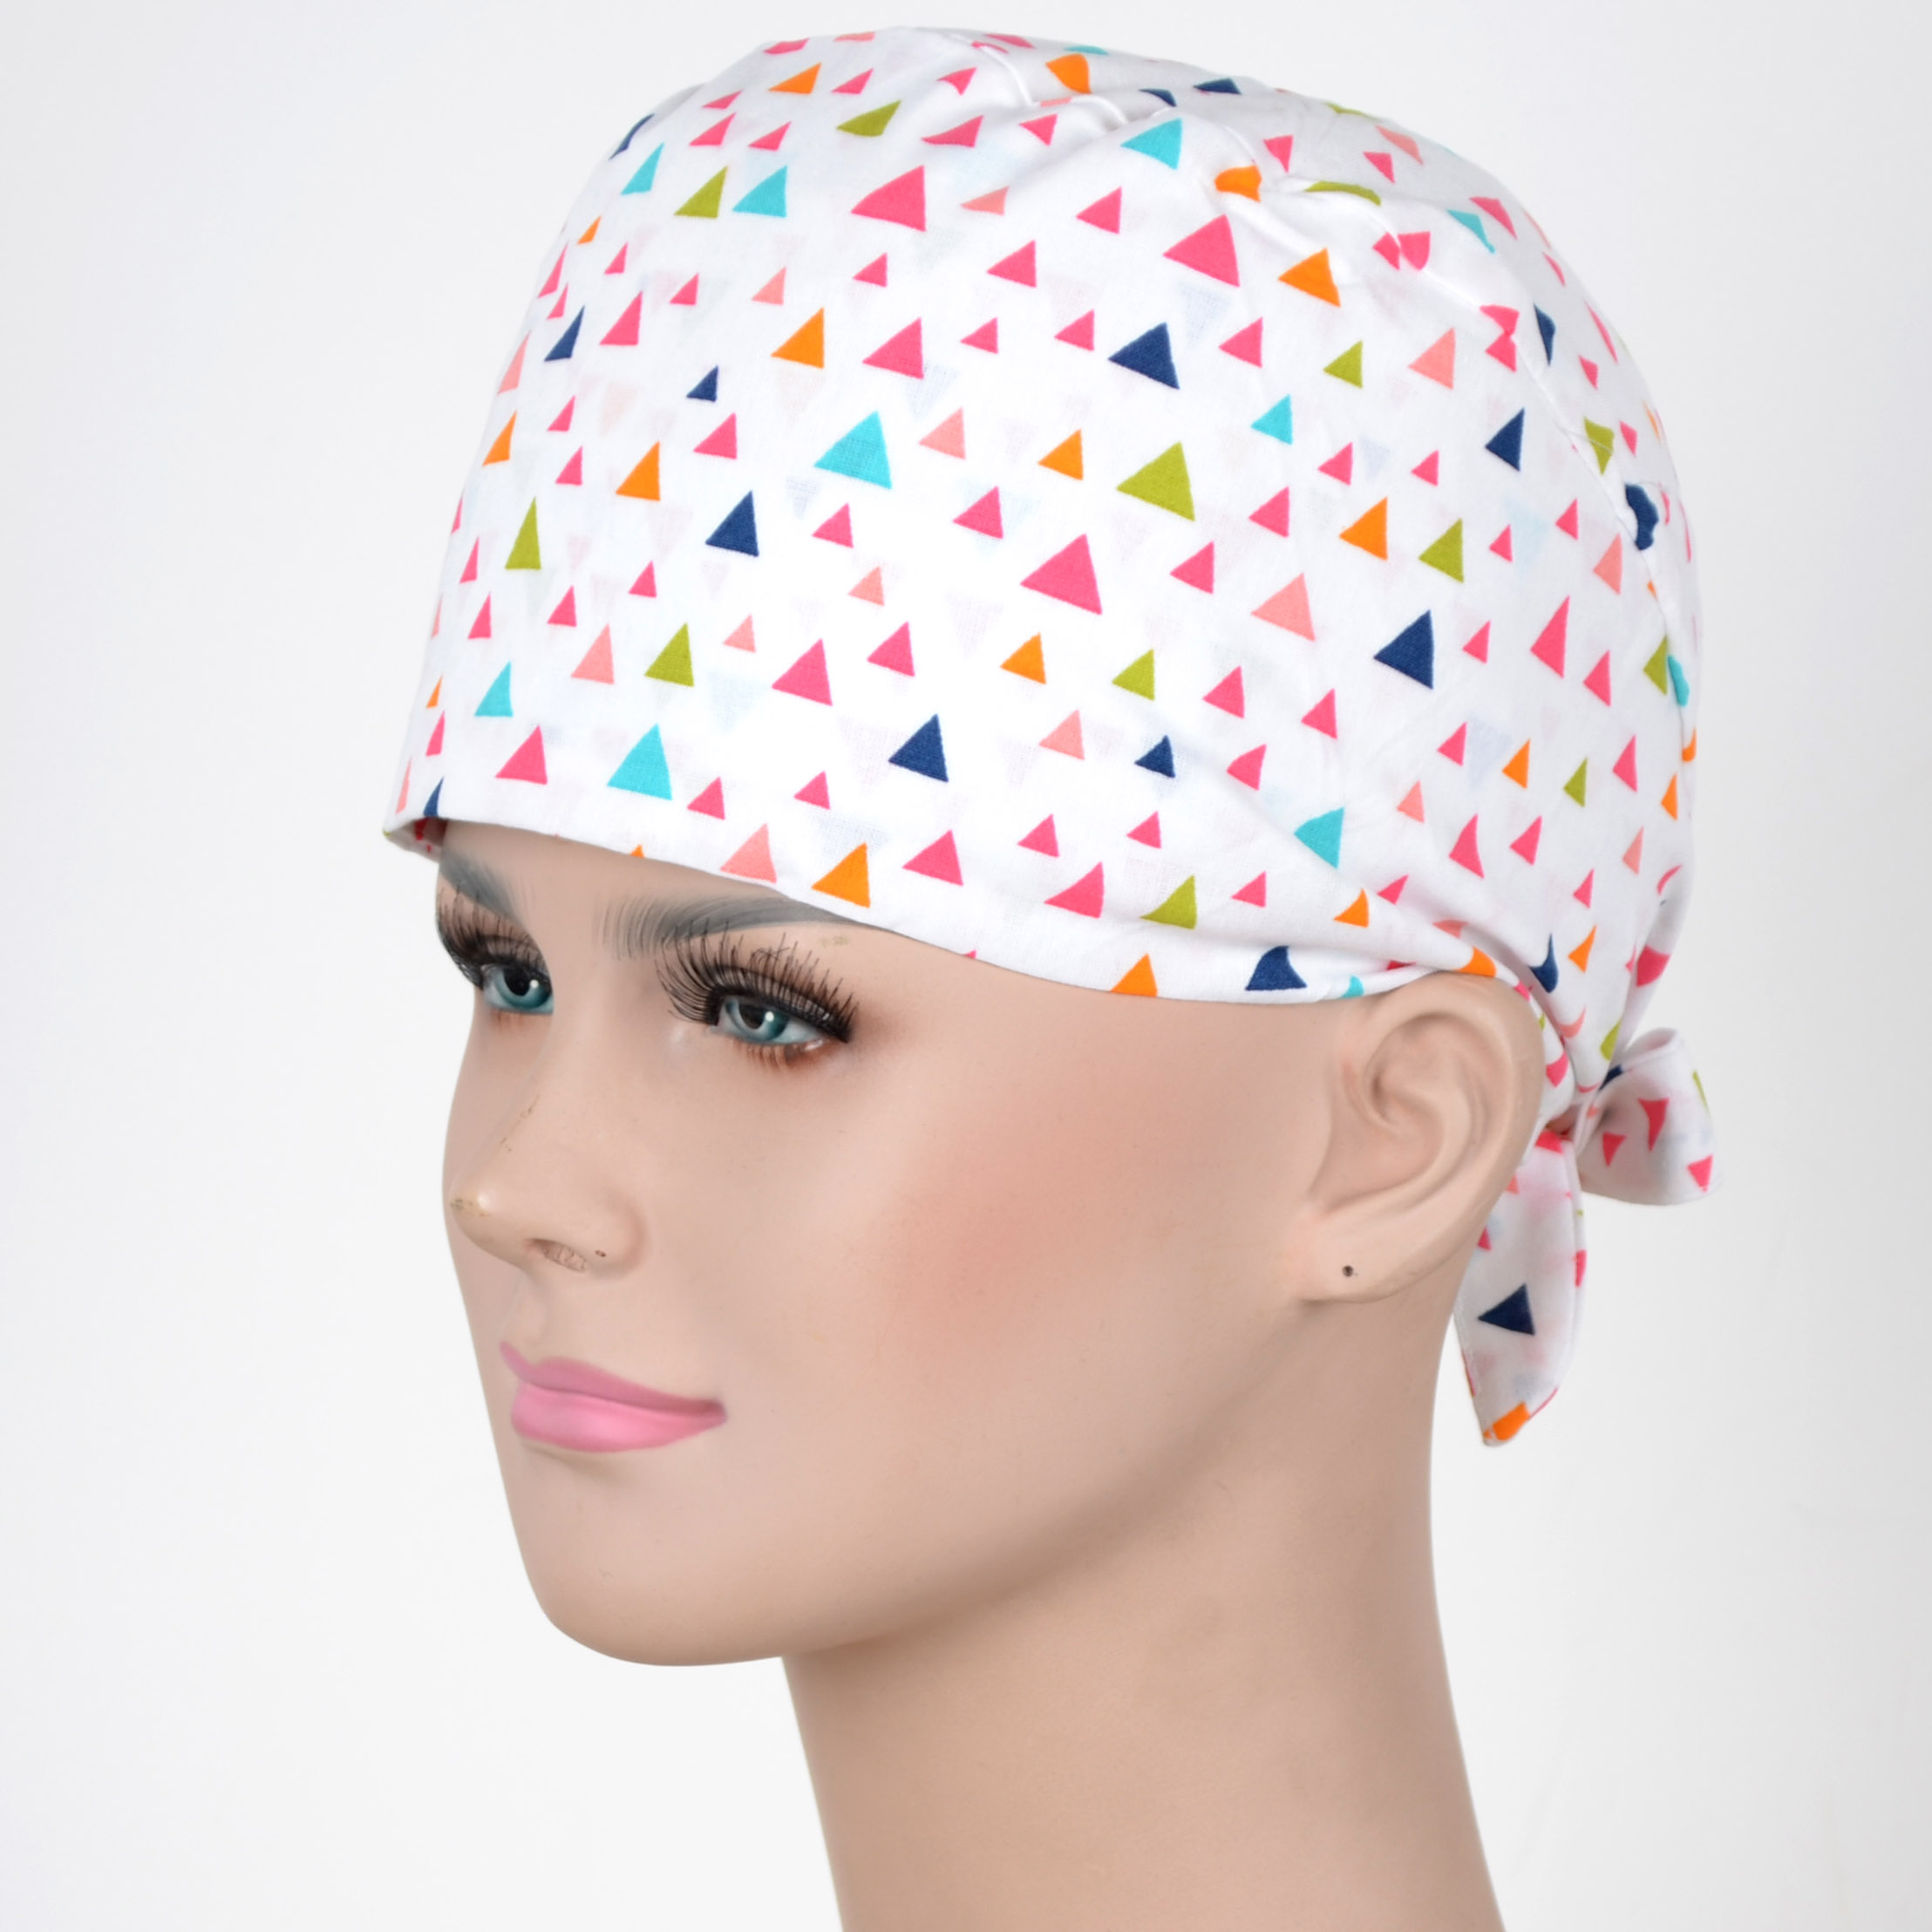 Hennar Wome Cotton Scrub Caps In White 100% Cotton  Hospital Medical Hats Print  Unisex Surgical Caps Mask